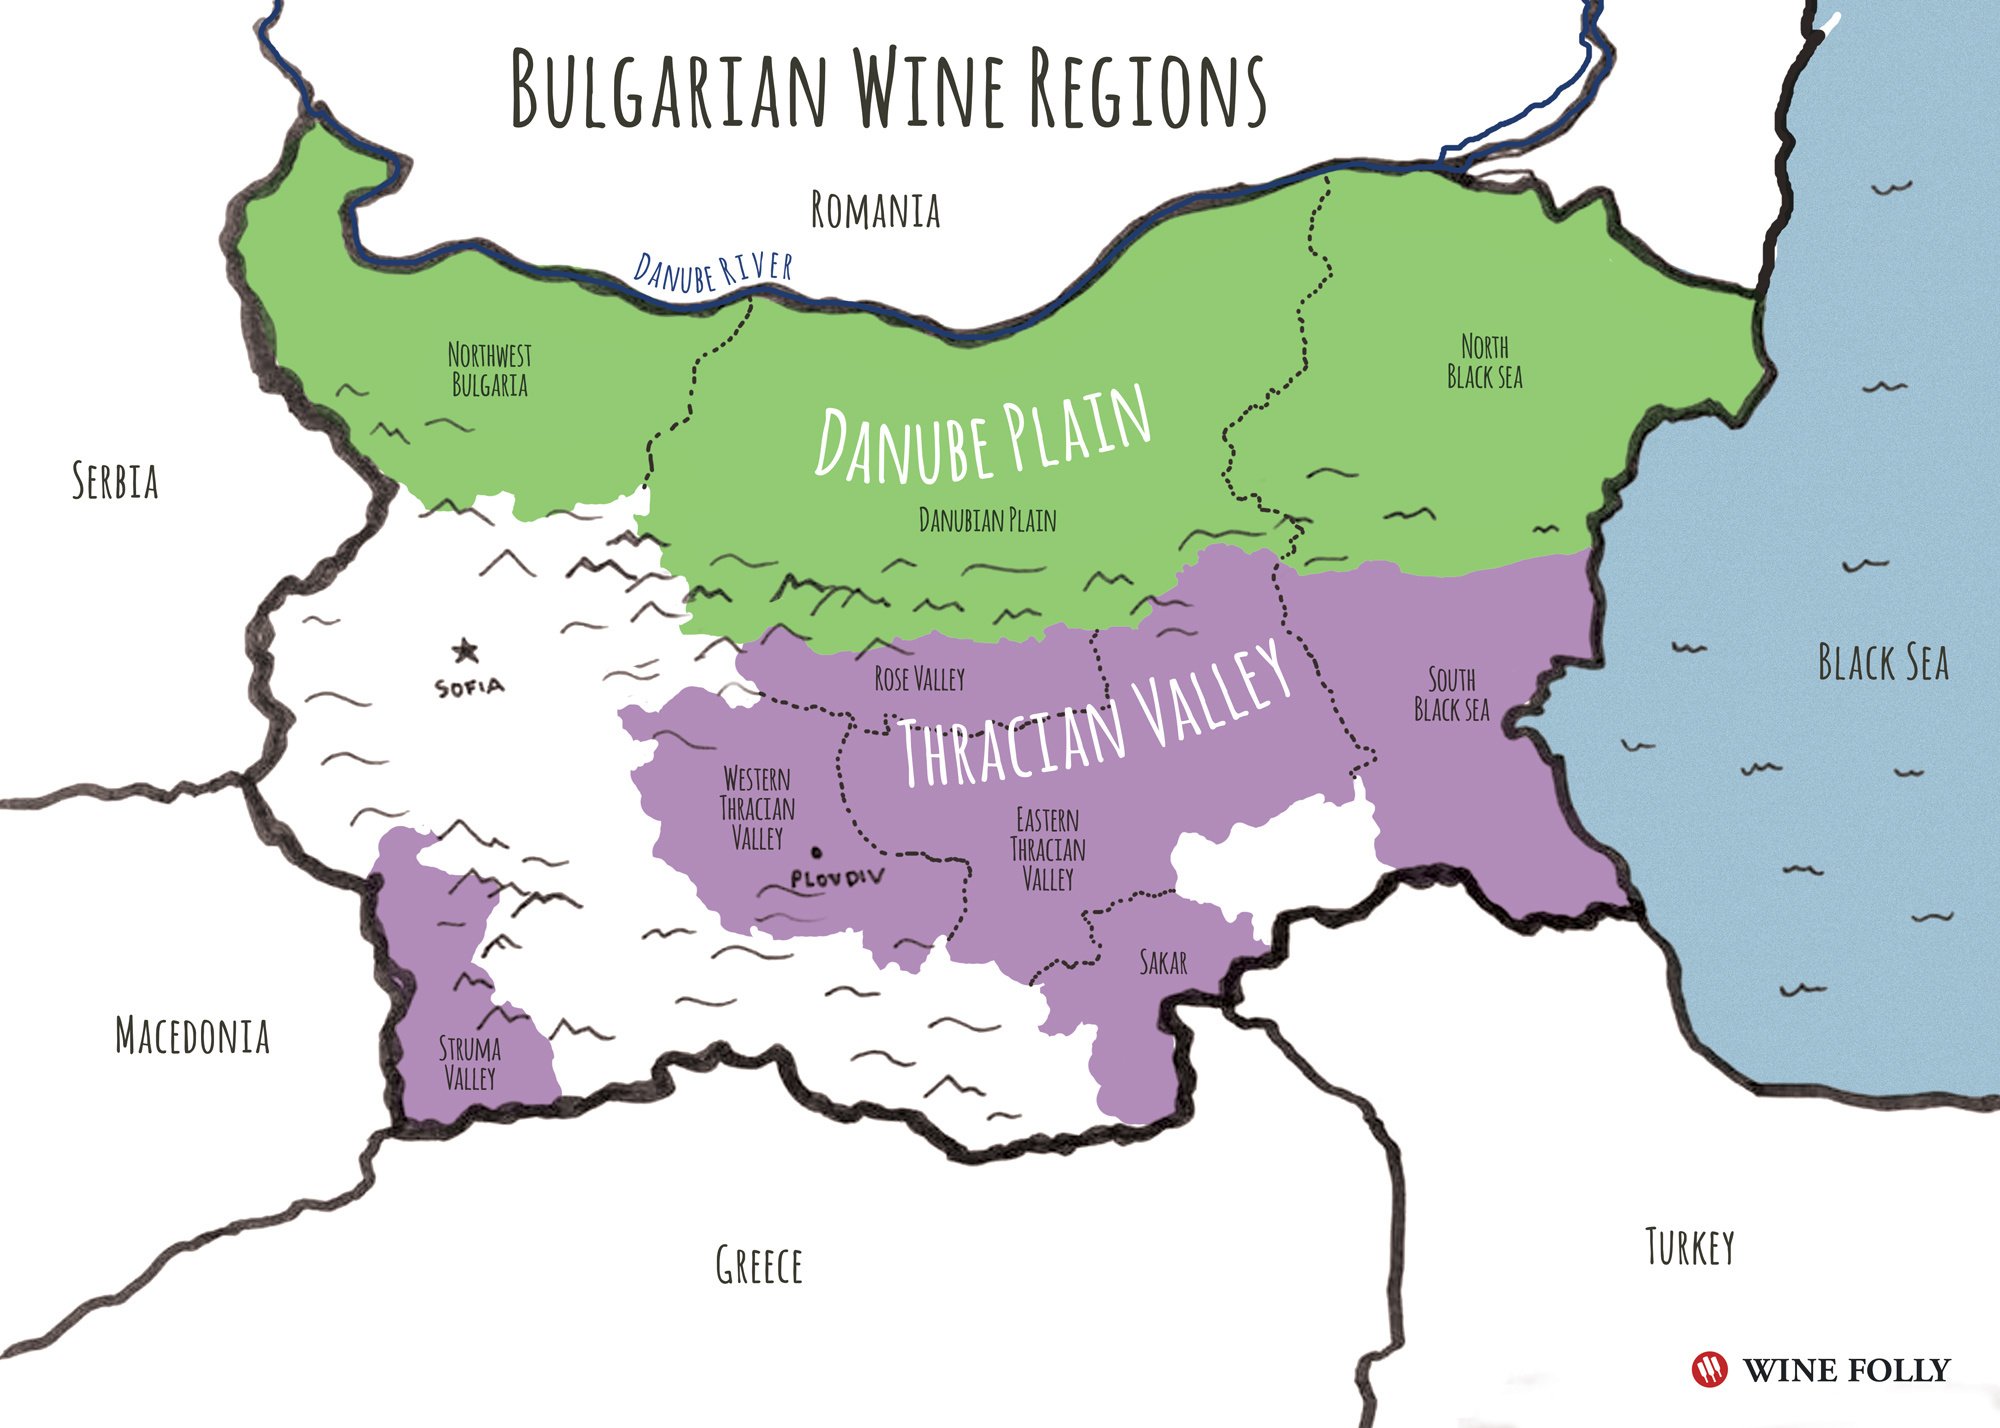 Bron: Bulgaria's wine regions and location on the Black Sea. by Wine Folly